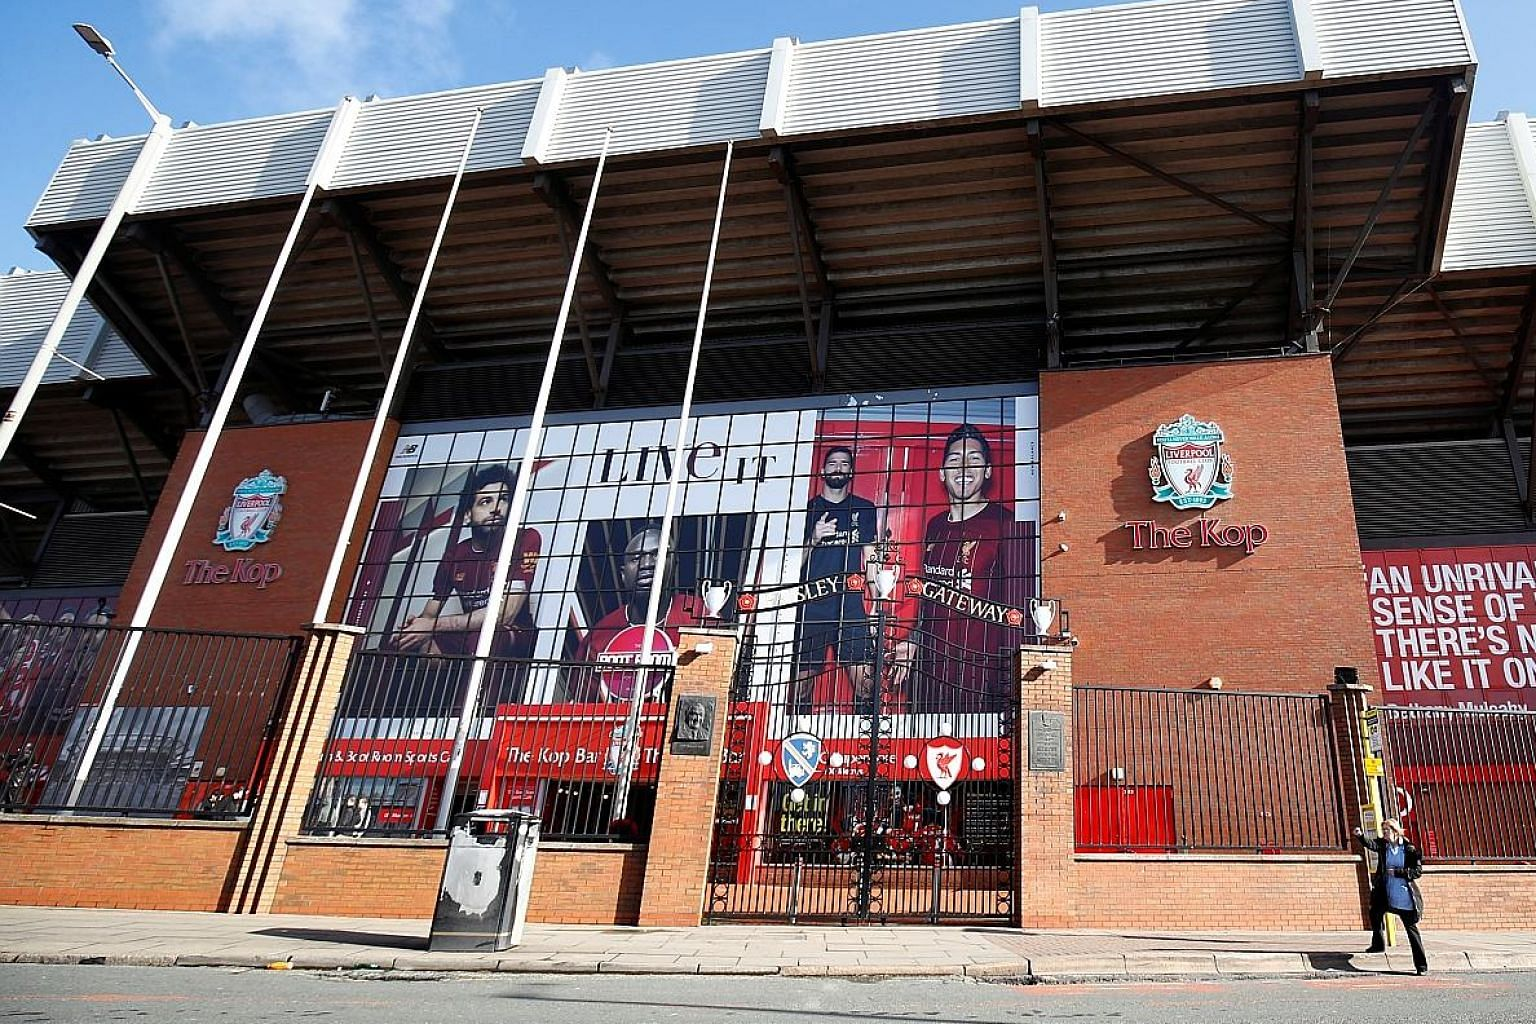 The Paisley Gateway in front of The Kop at Anfield. Liverpool say they will find other ways to operate during the hiatus without applying for government assistance. PHOTO: REUTERS